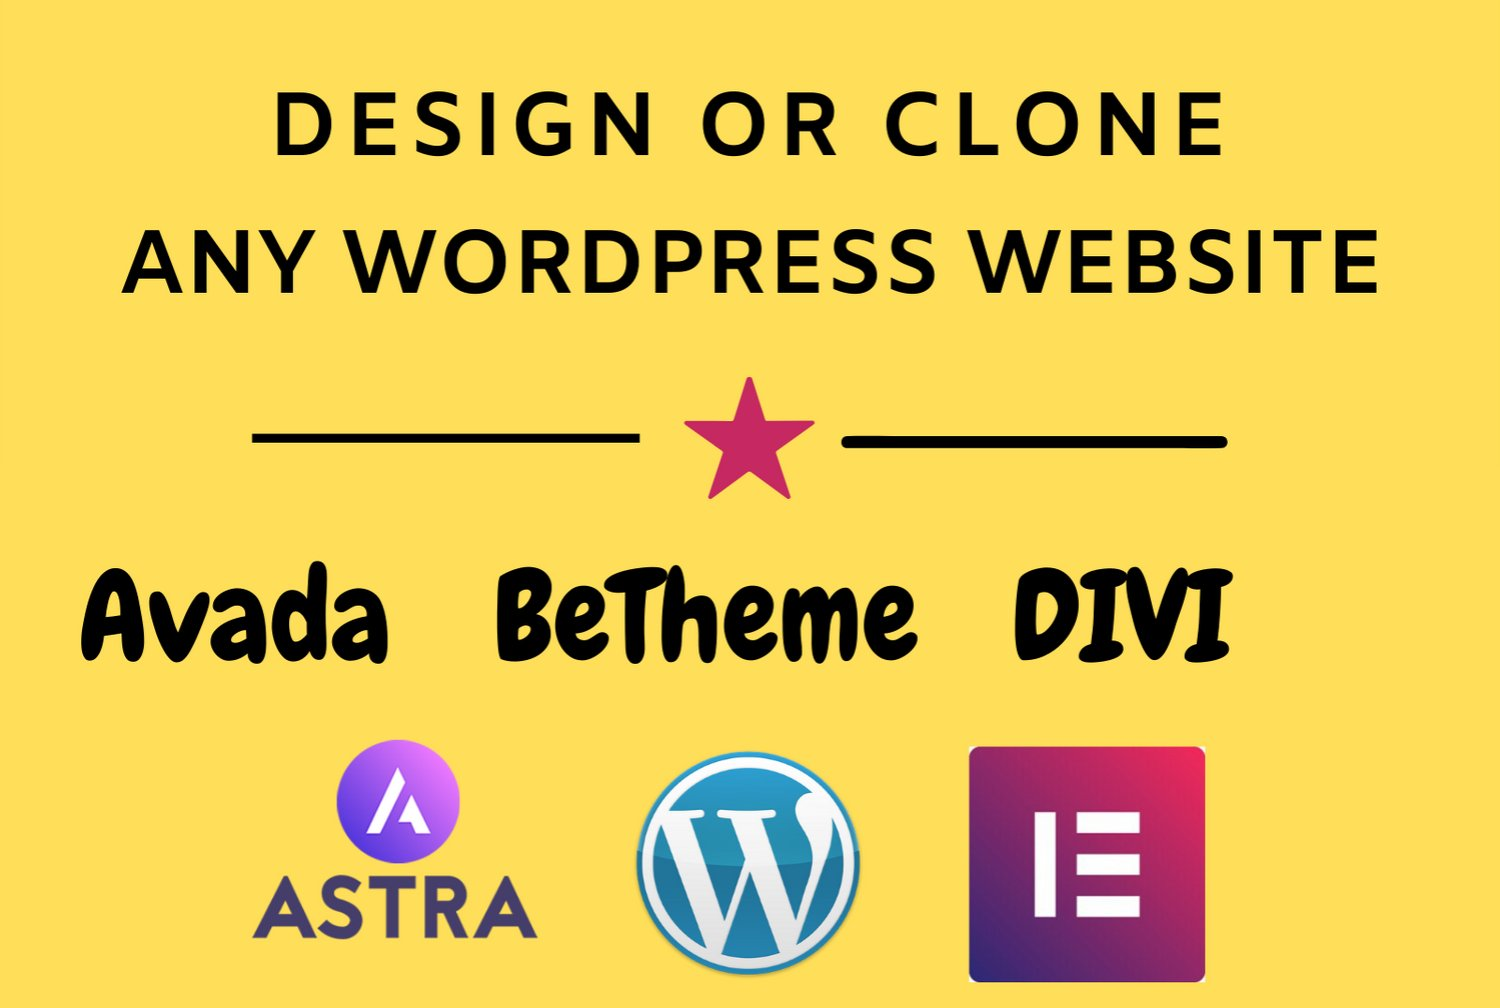 I will design or clone any WordPress website for your business